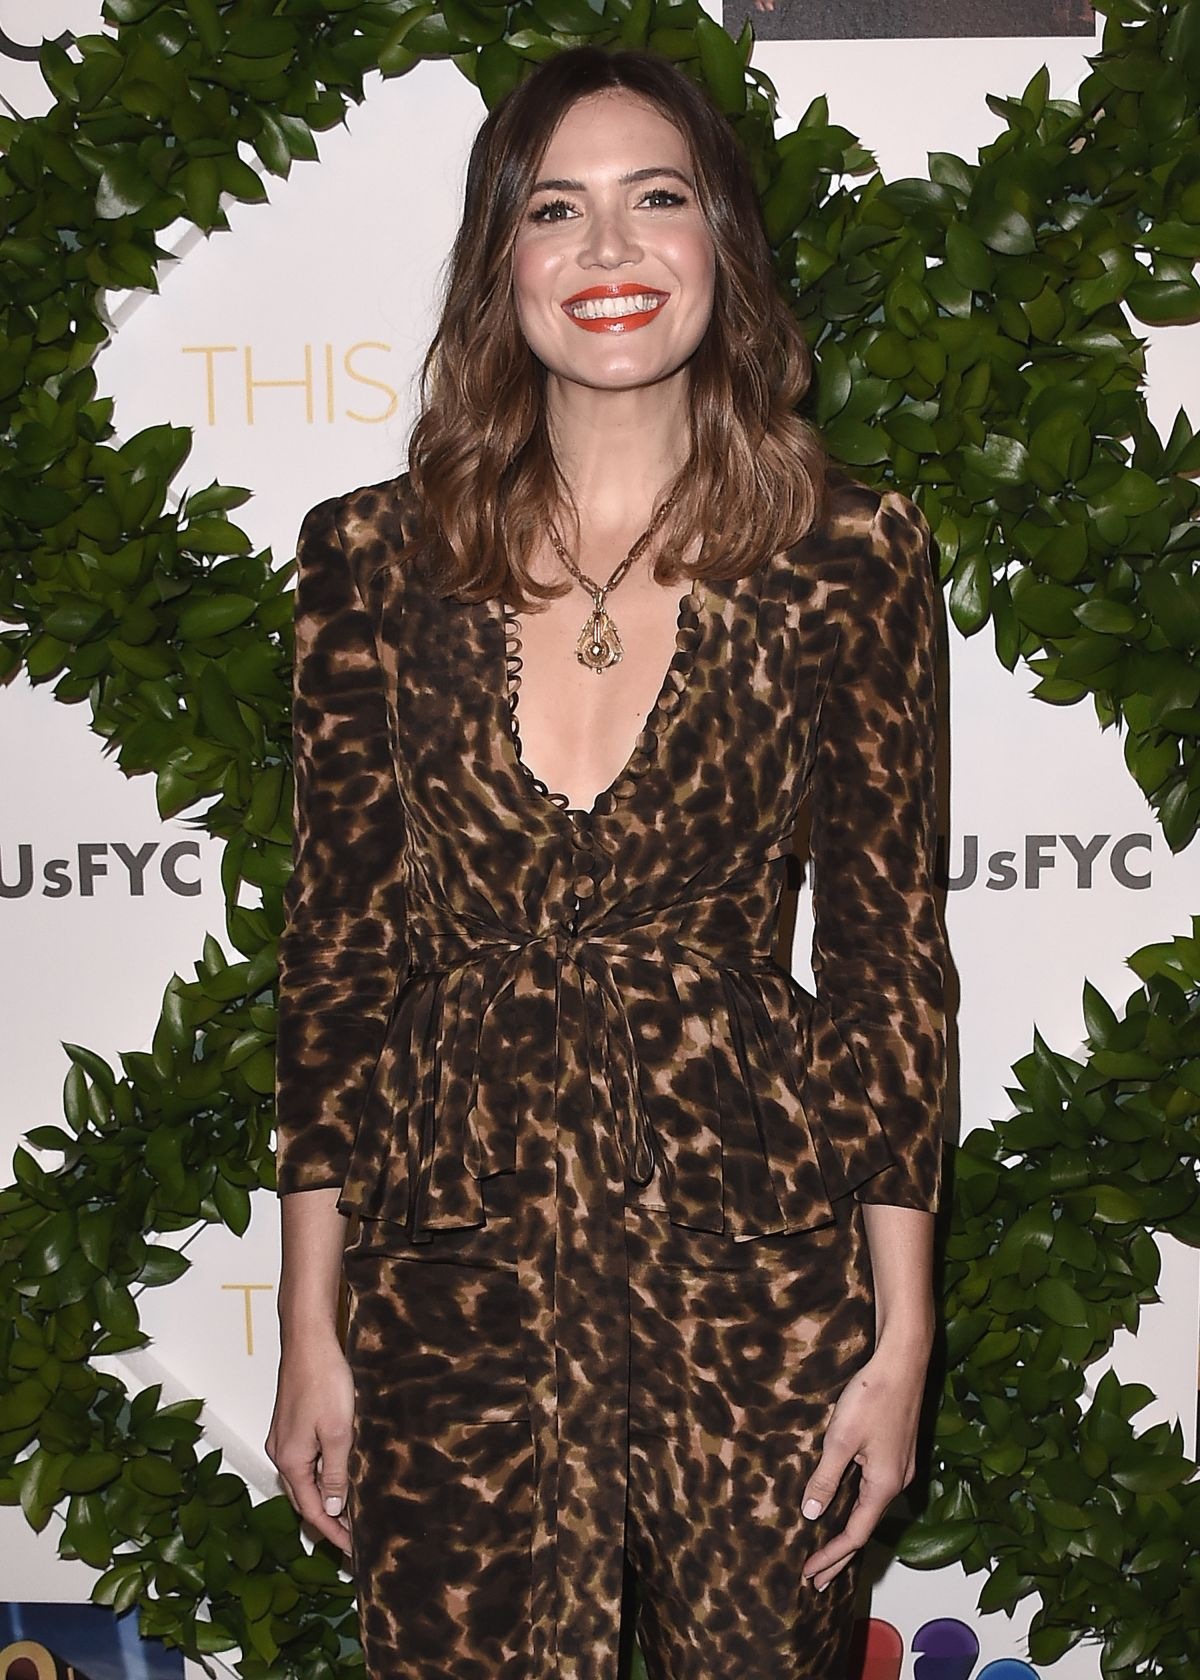 Mandy Moore At 20th Century Fox Television and NBC's 'This